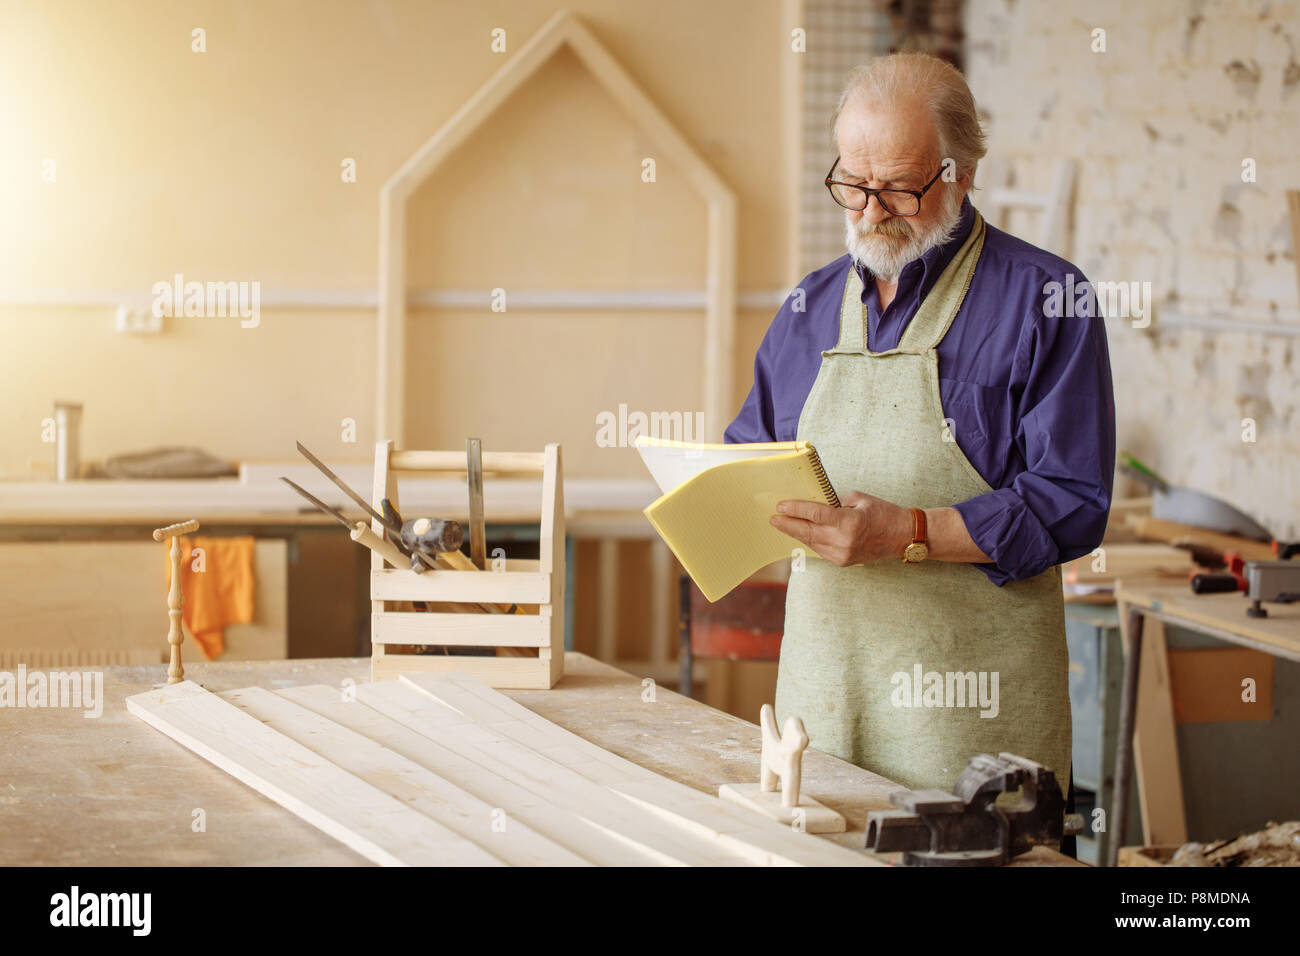 old thoughtful woodworker read manual. learn to work with wood. learn the manual - Stock Image